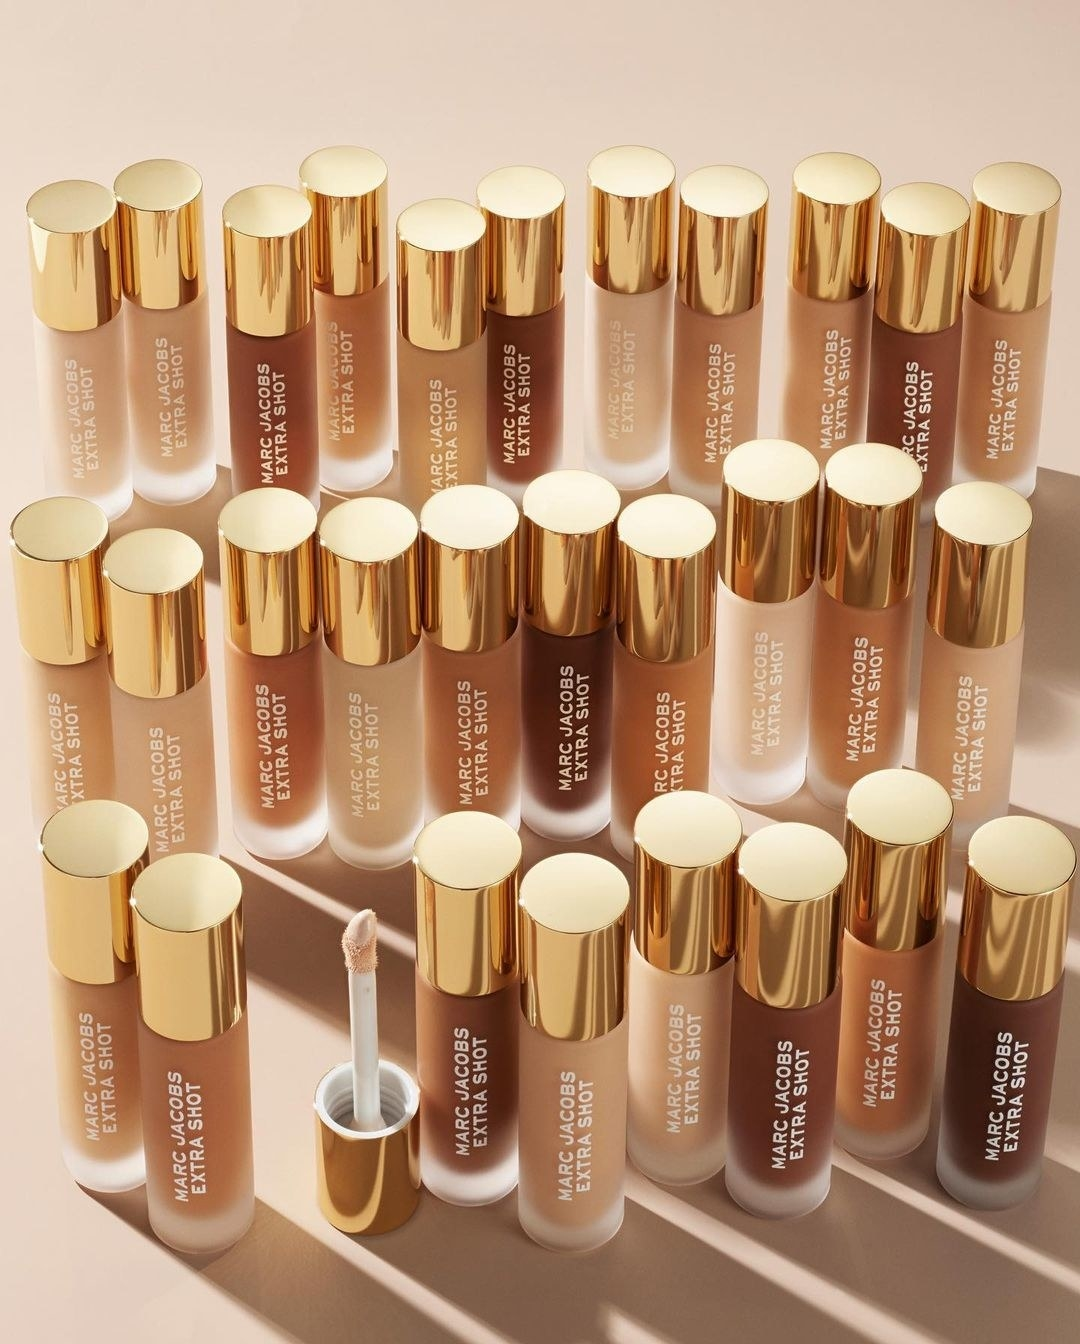 All the shades of the concealer arranged on a simple background